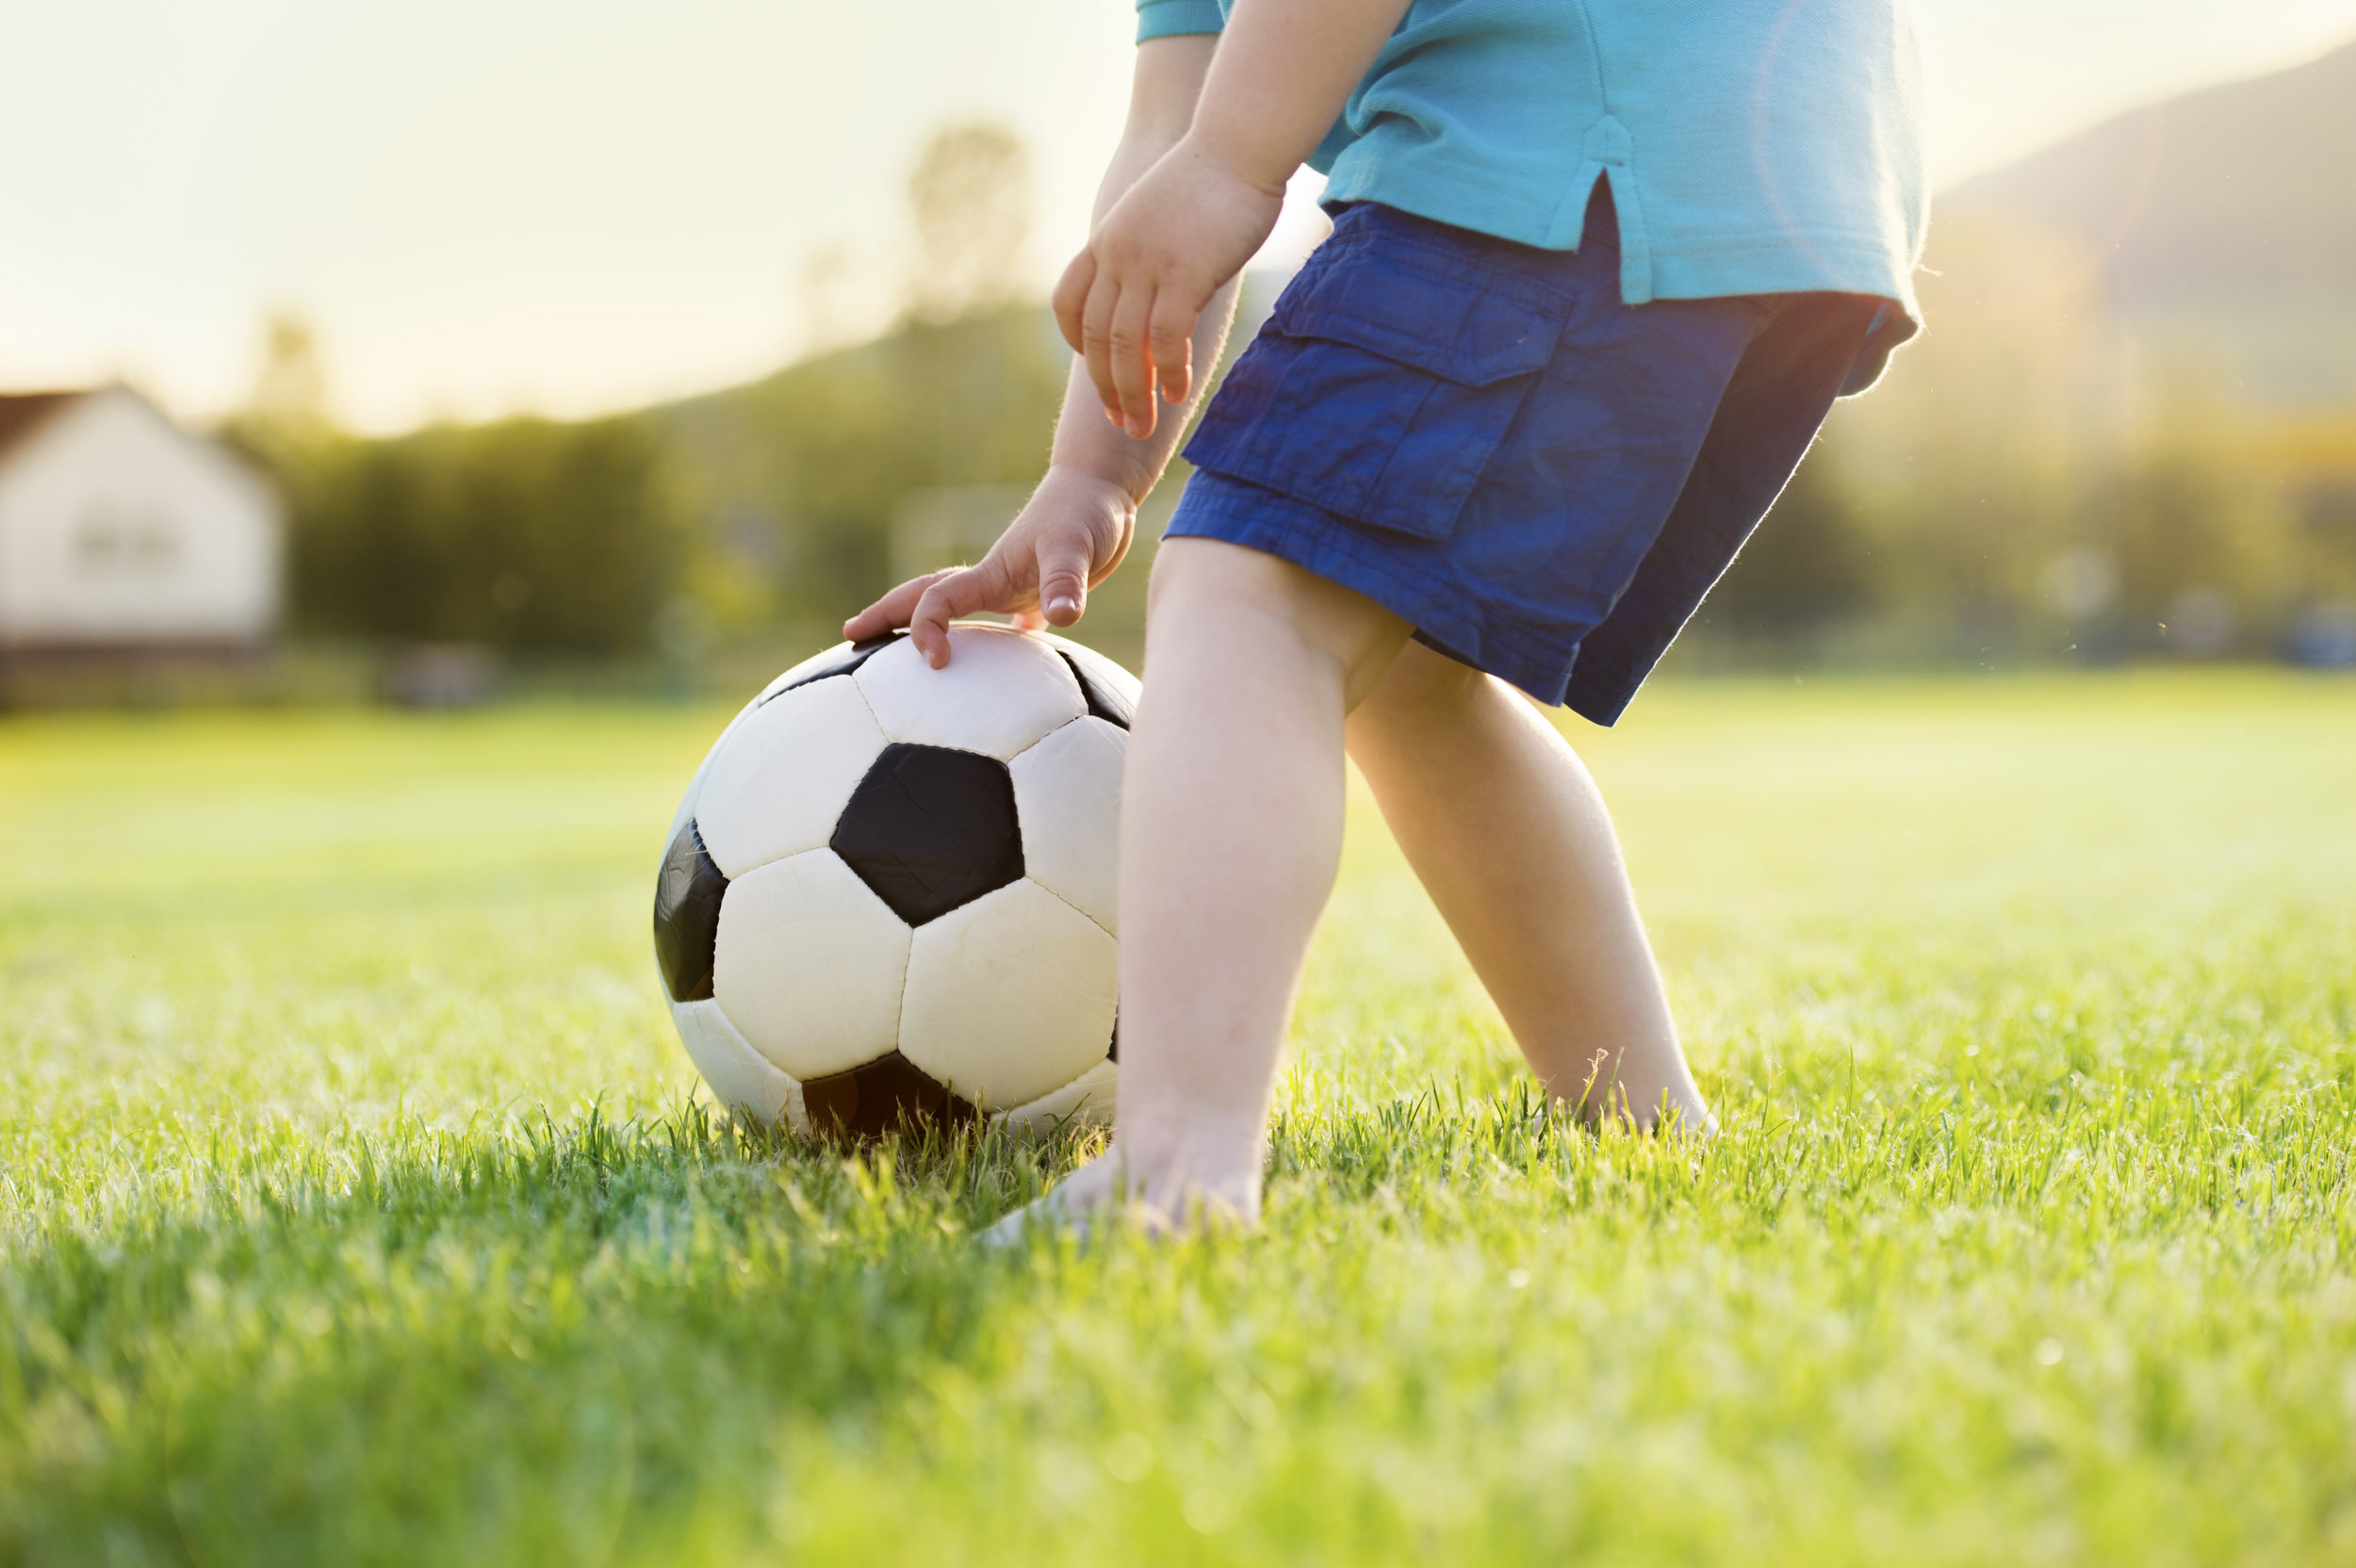 graphicstock-close-up-of-little-boy-playing-football-on-football-pitch_H0DW-X3bW.jpg